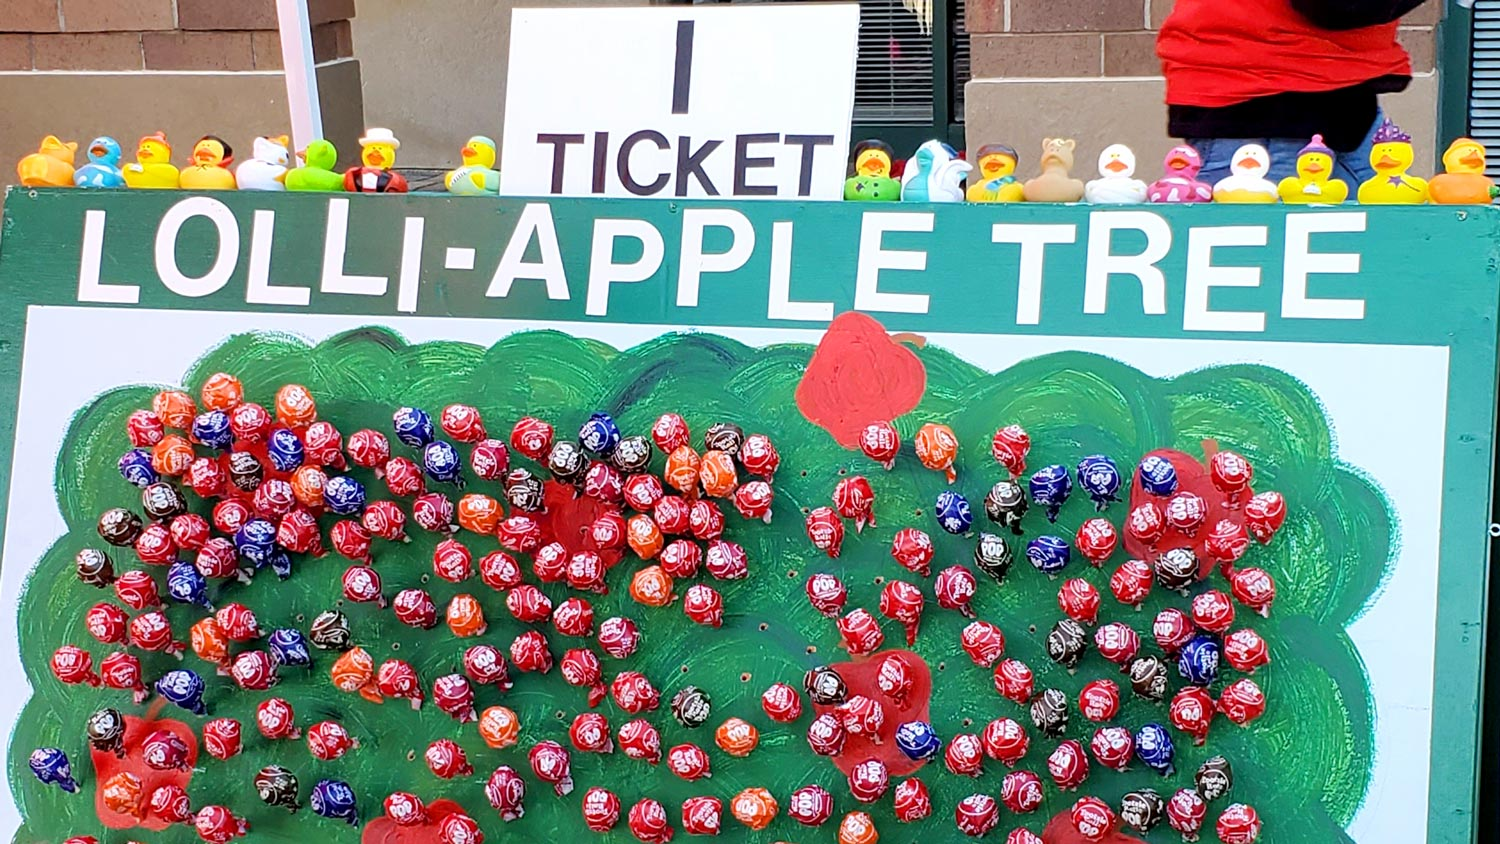 Lolli-apple-tree and rubber duckys.